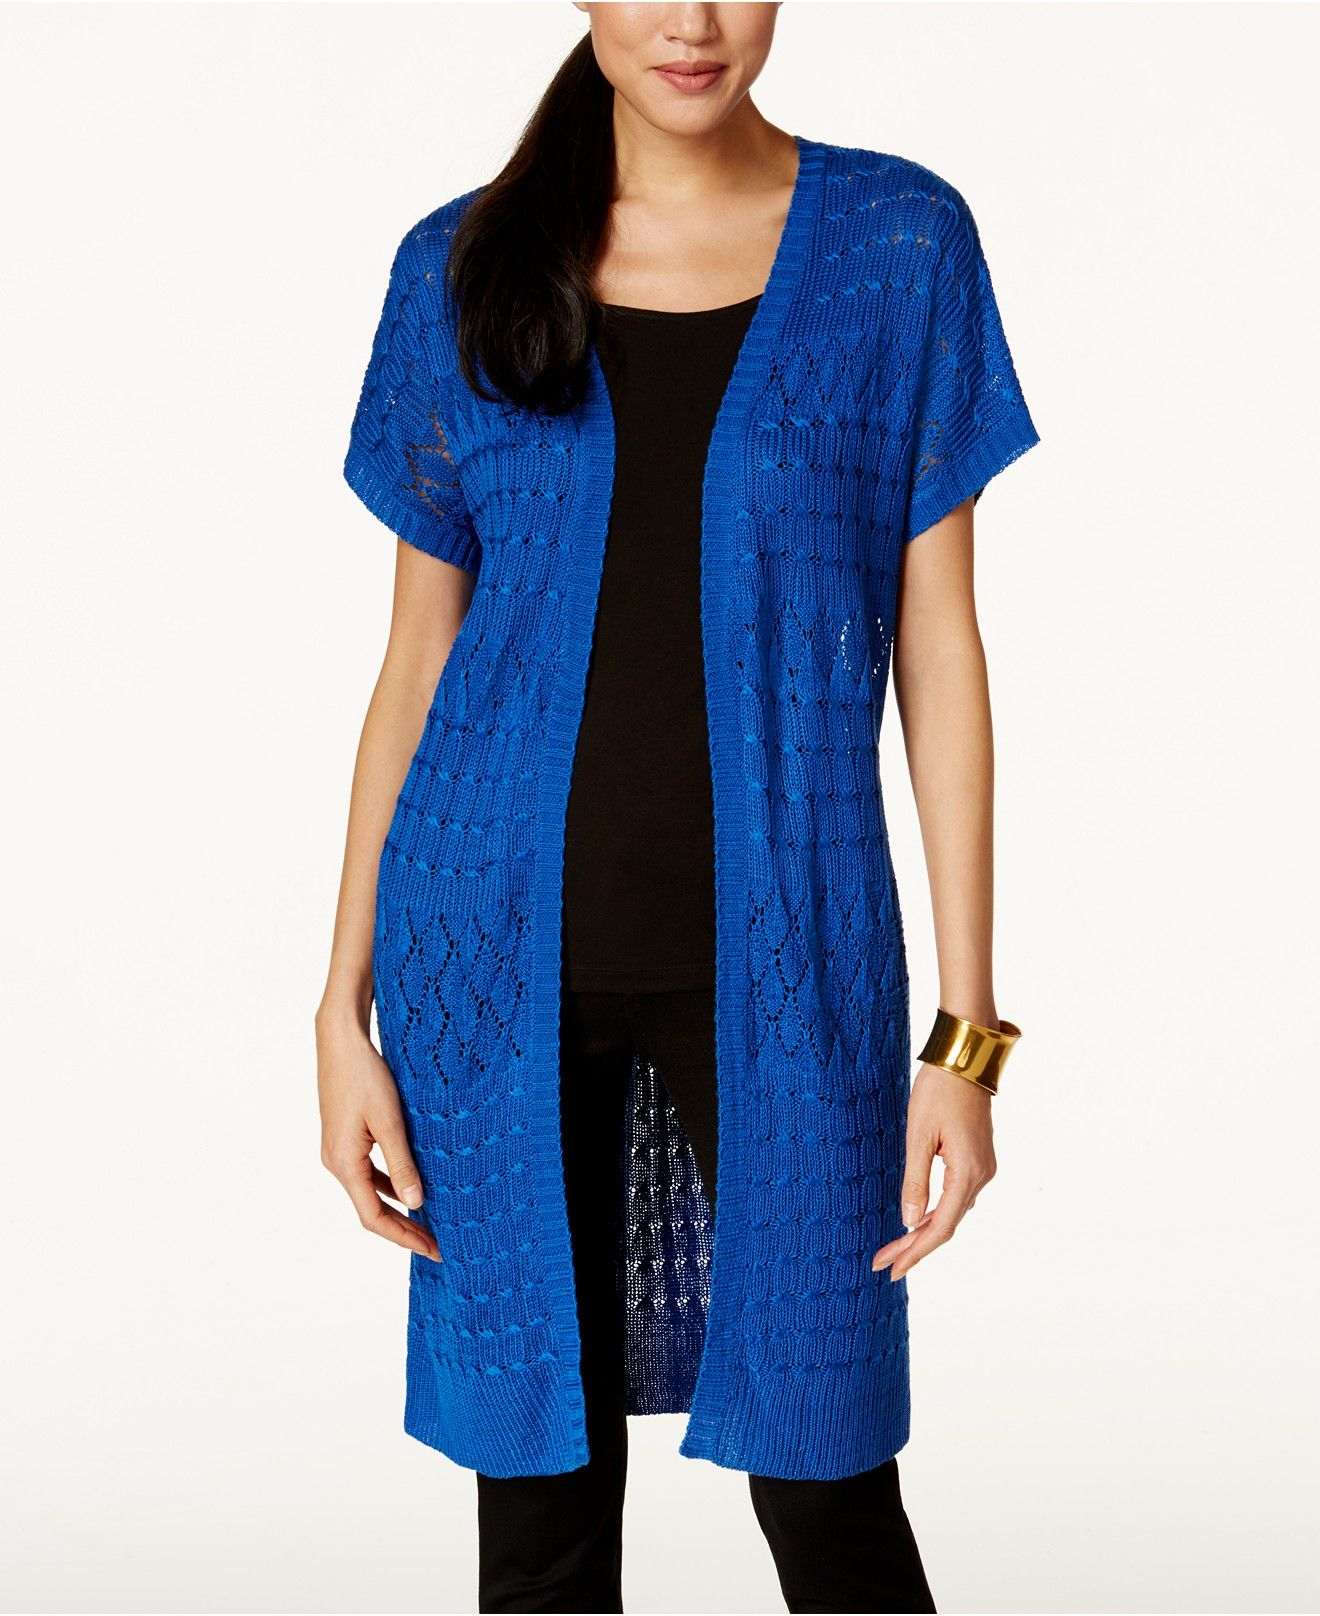 NY Collection Open-Knit Duster Cardigan - Sweaters - Women ...